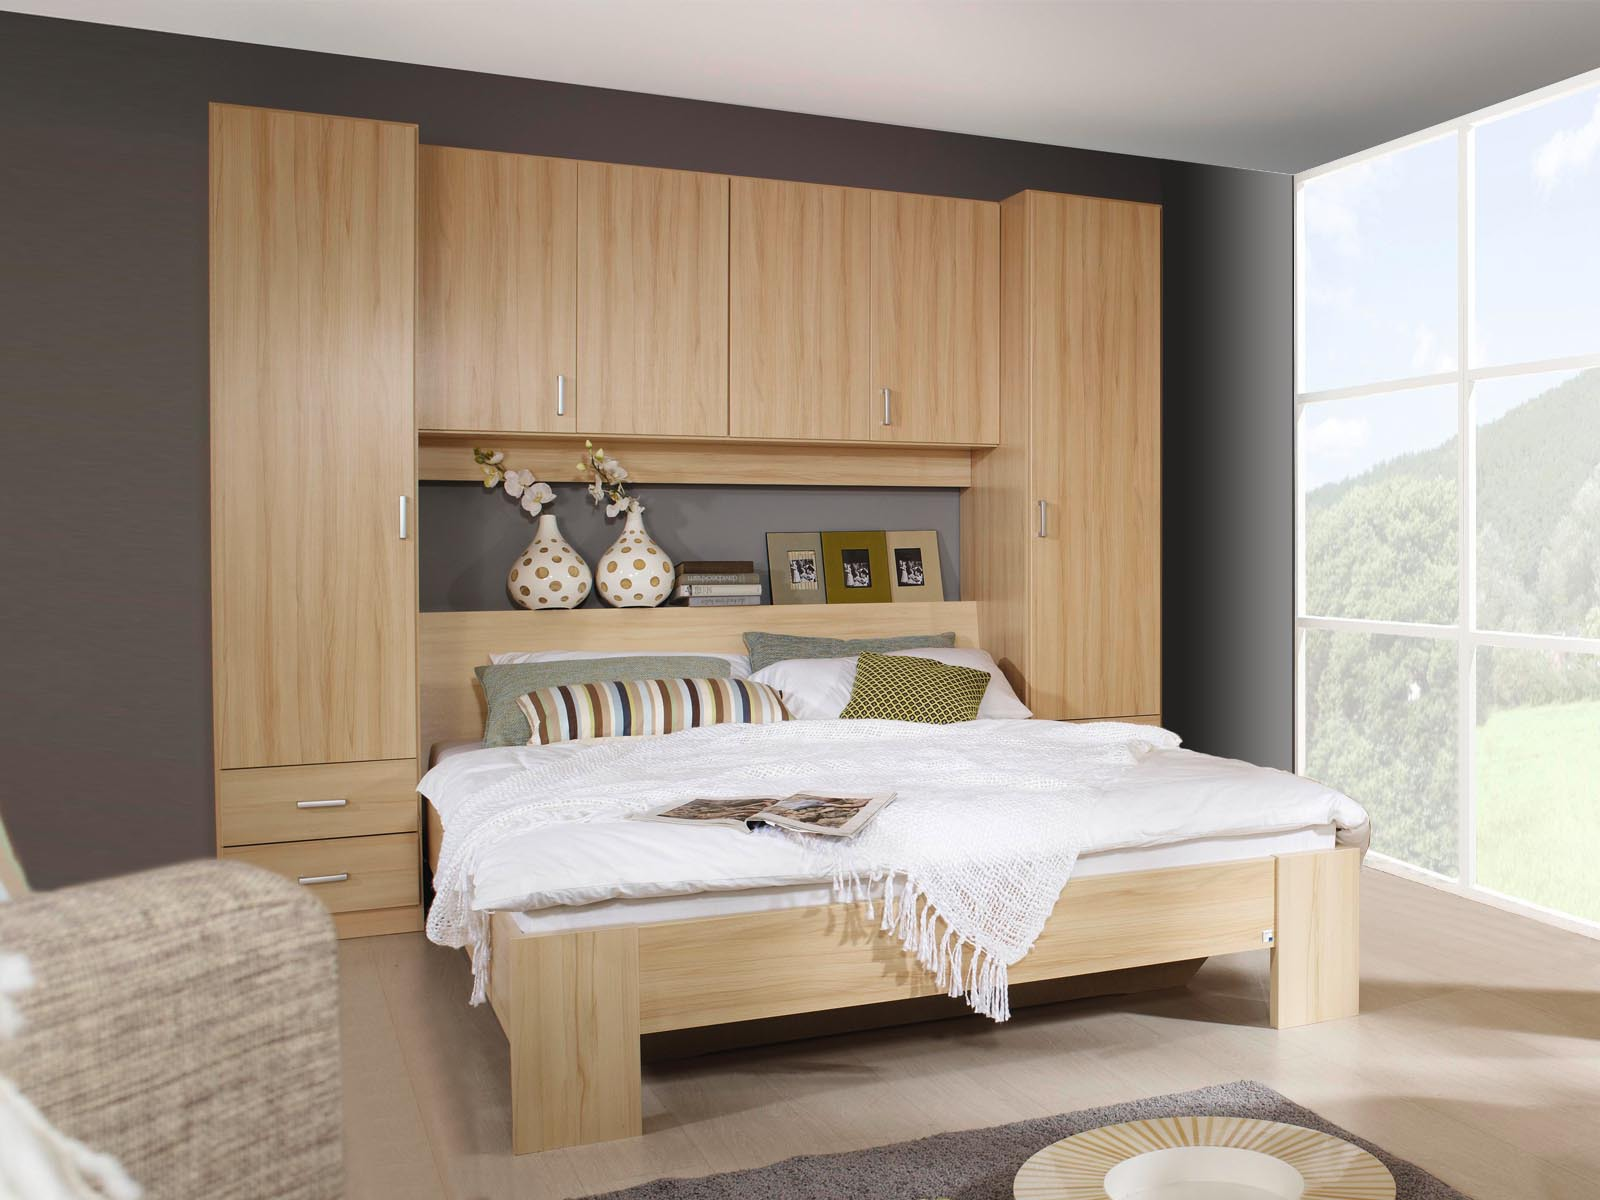 tete de lit avec rangement meubles fran ais. Black Bedroom Furniture Sets. Home Design Ideas